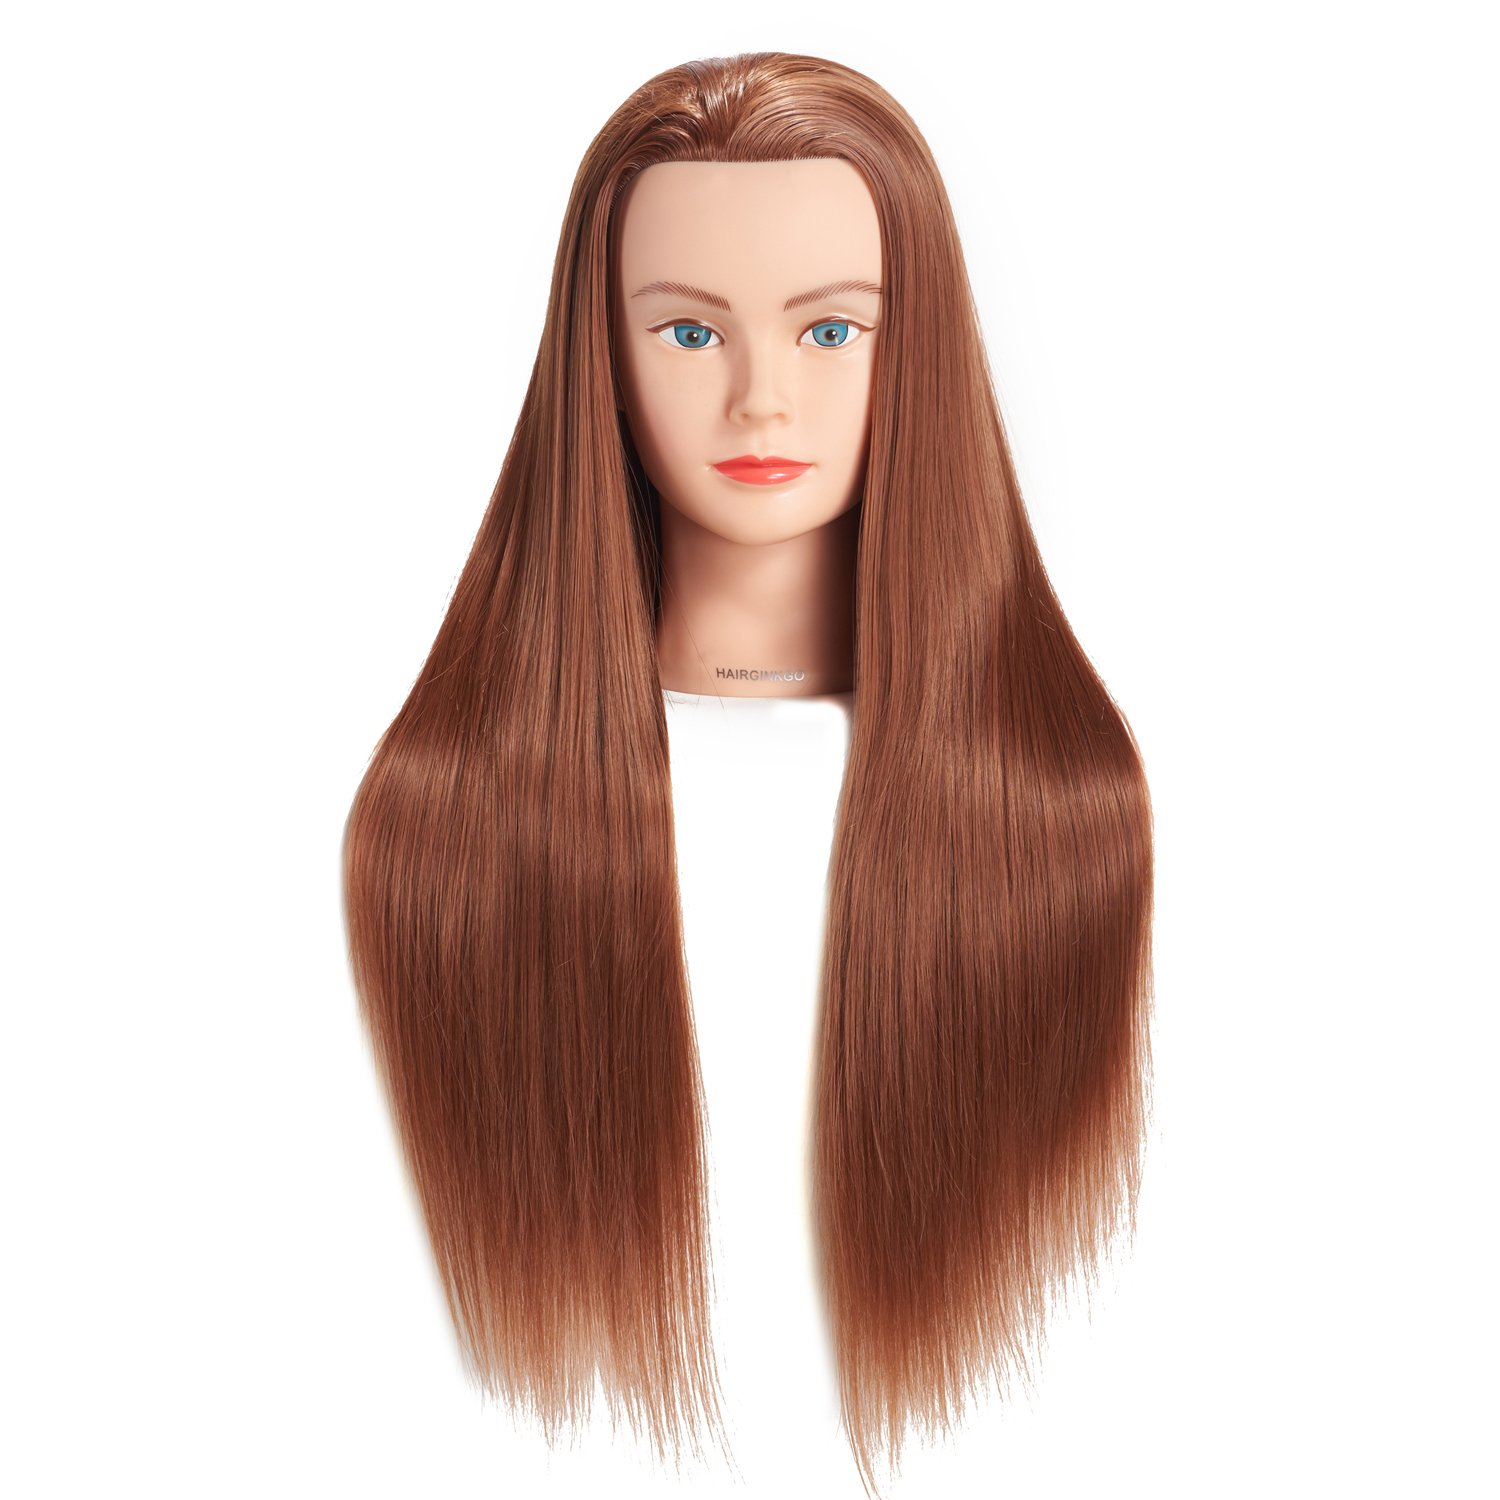 Hairginkgo 26-28 Super Long Cosmetology Mannequin Manikin Synthetic Fiber Training Head Doll Head with Clamp (black)